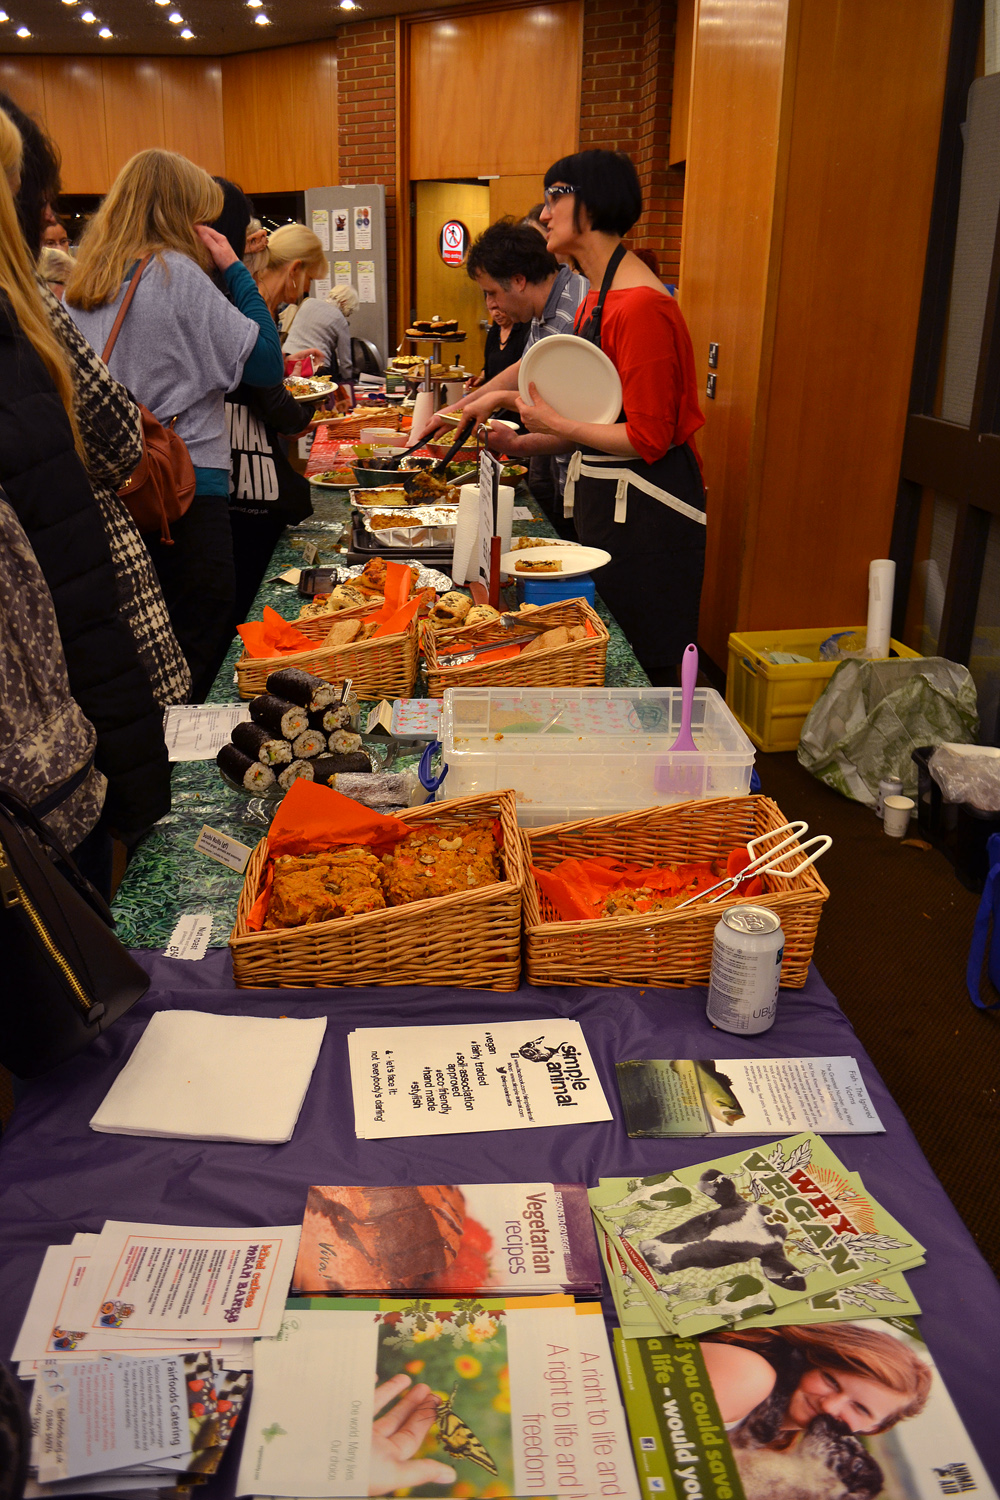 The Fairfoods of Devon with Vegan meals. Photo: Barbora Sajmovicova, 2015.